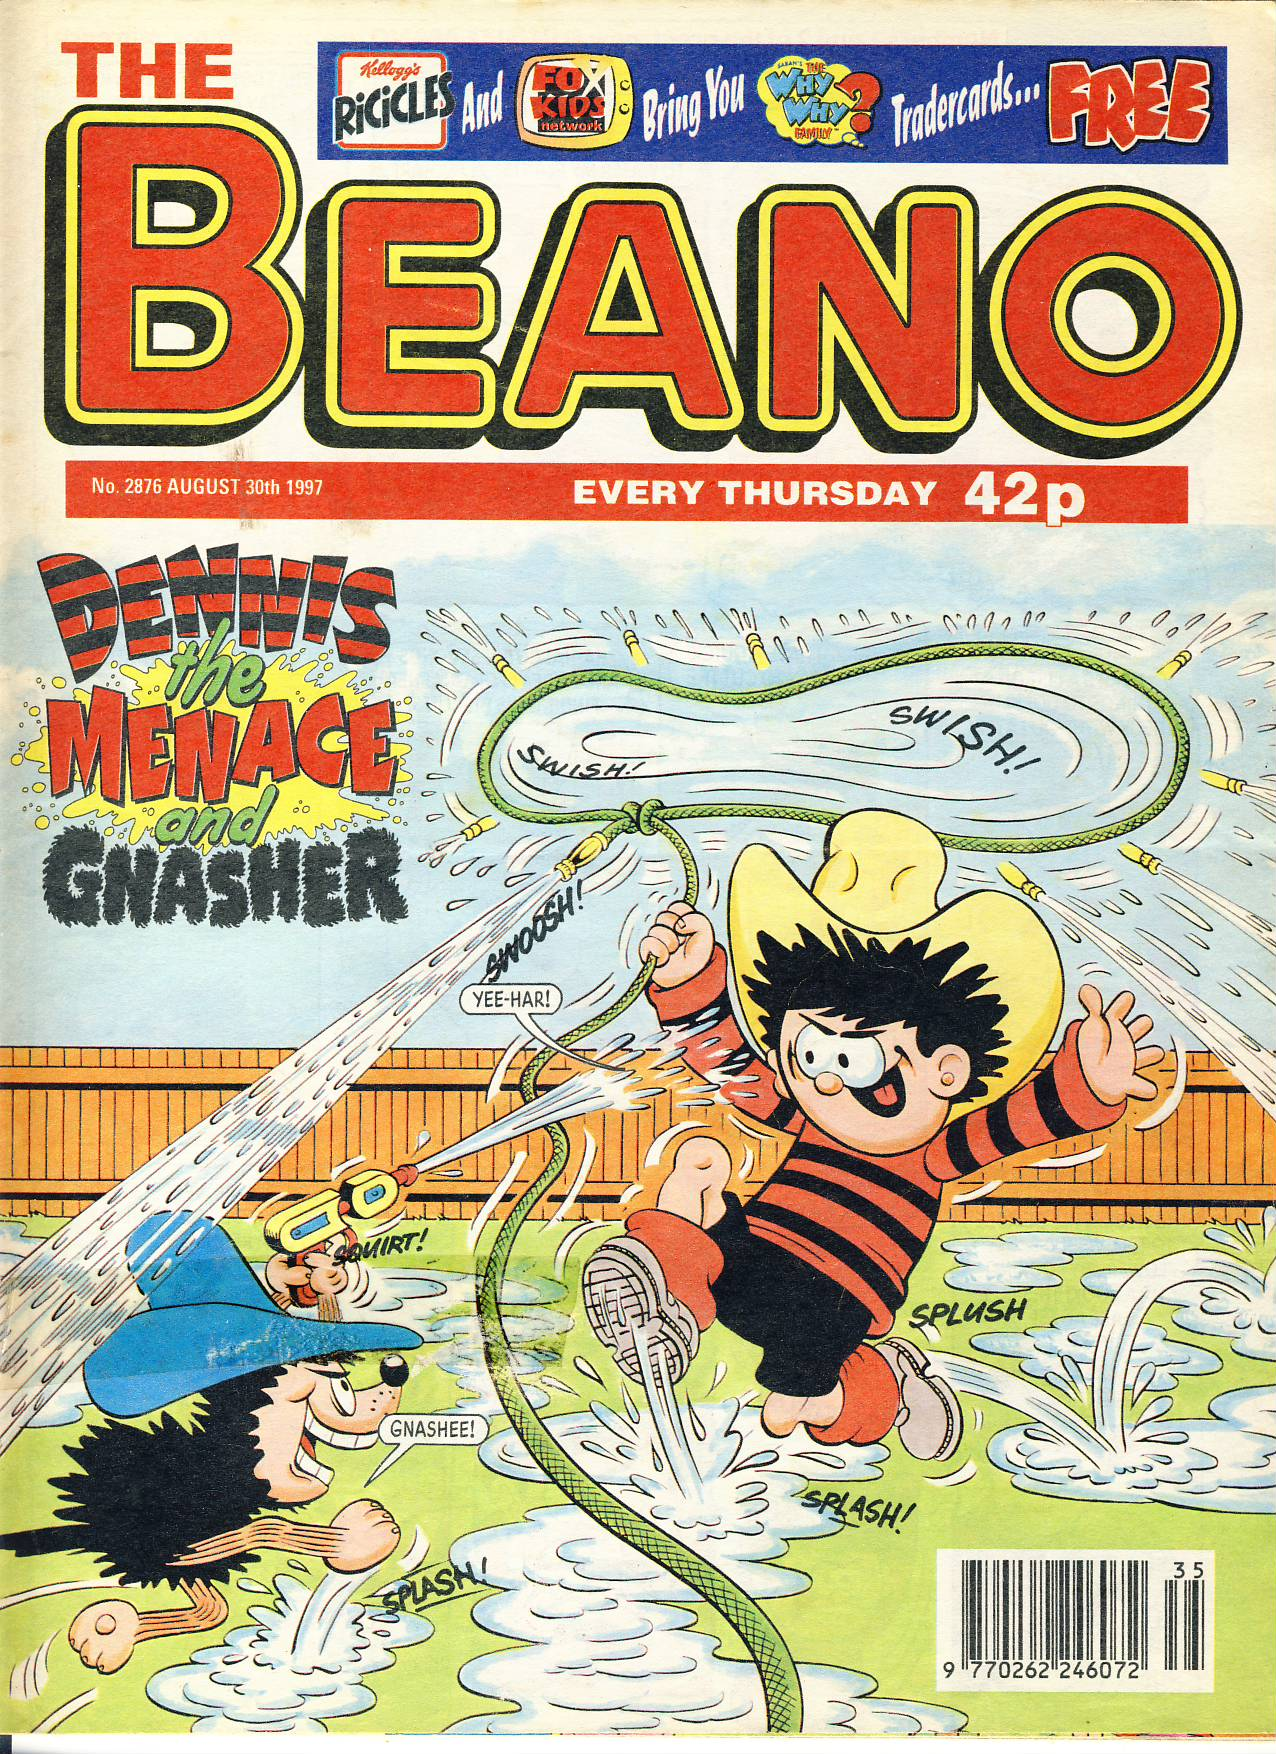 1997 August 30th BEANO vintage comic Good Gift Christmas Present Birthday Anniversary ref208 a pre-owned item in very good read condition.